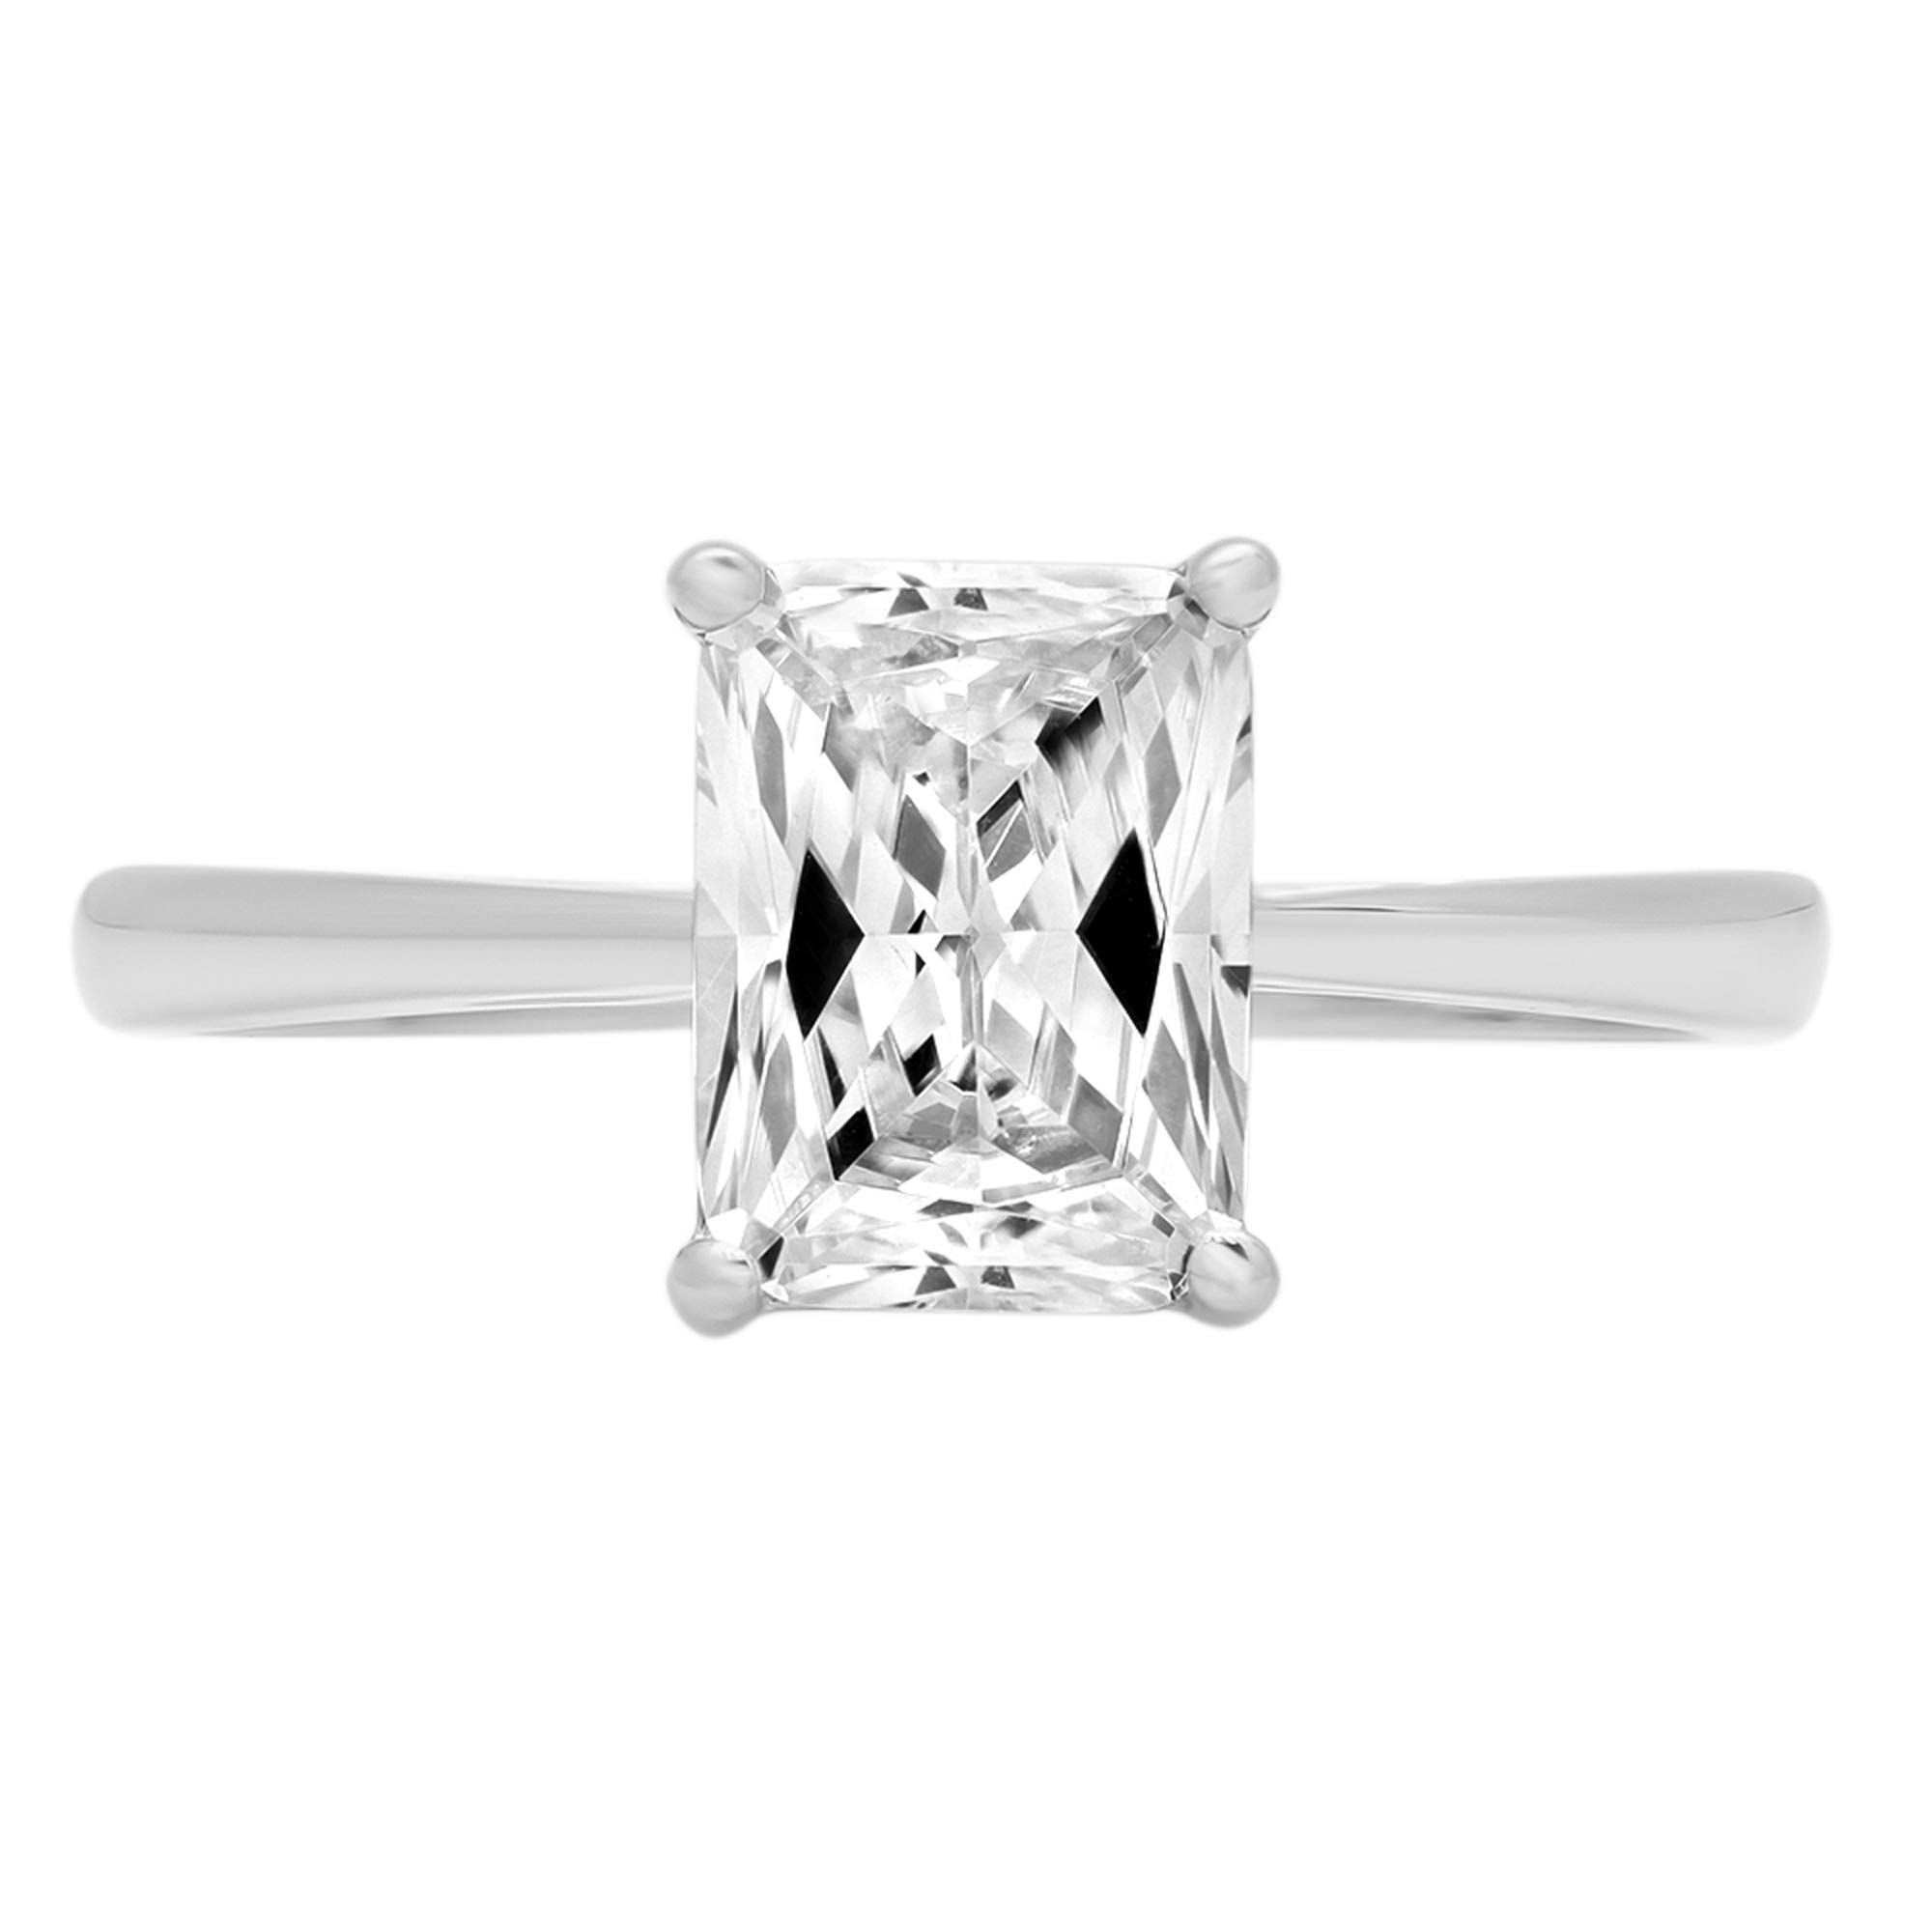 1.95ct Brilliant Emerald Cut Solitaire Highest Quality Lab Created White Sapphire Ideal VVS1 D 4-Prong Classic Designer Statement Ring Solid Real 14k White Gold for Women